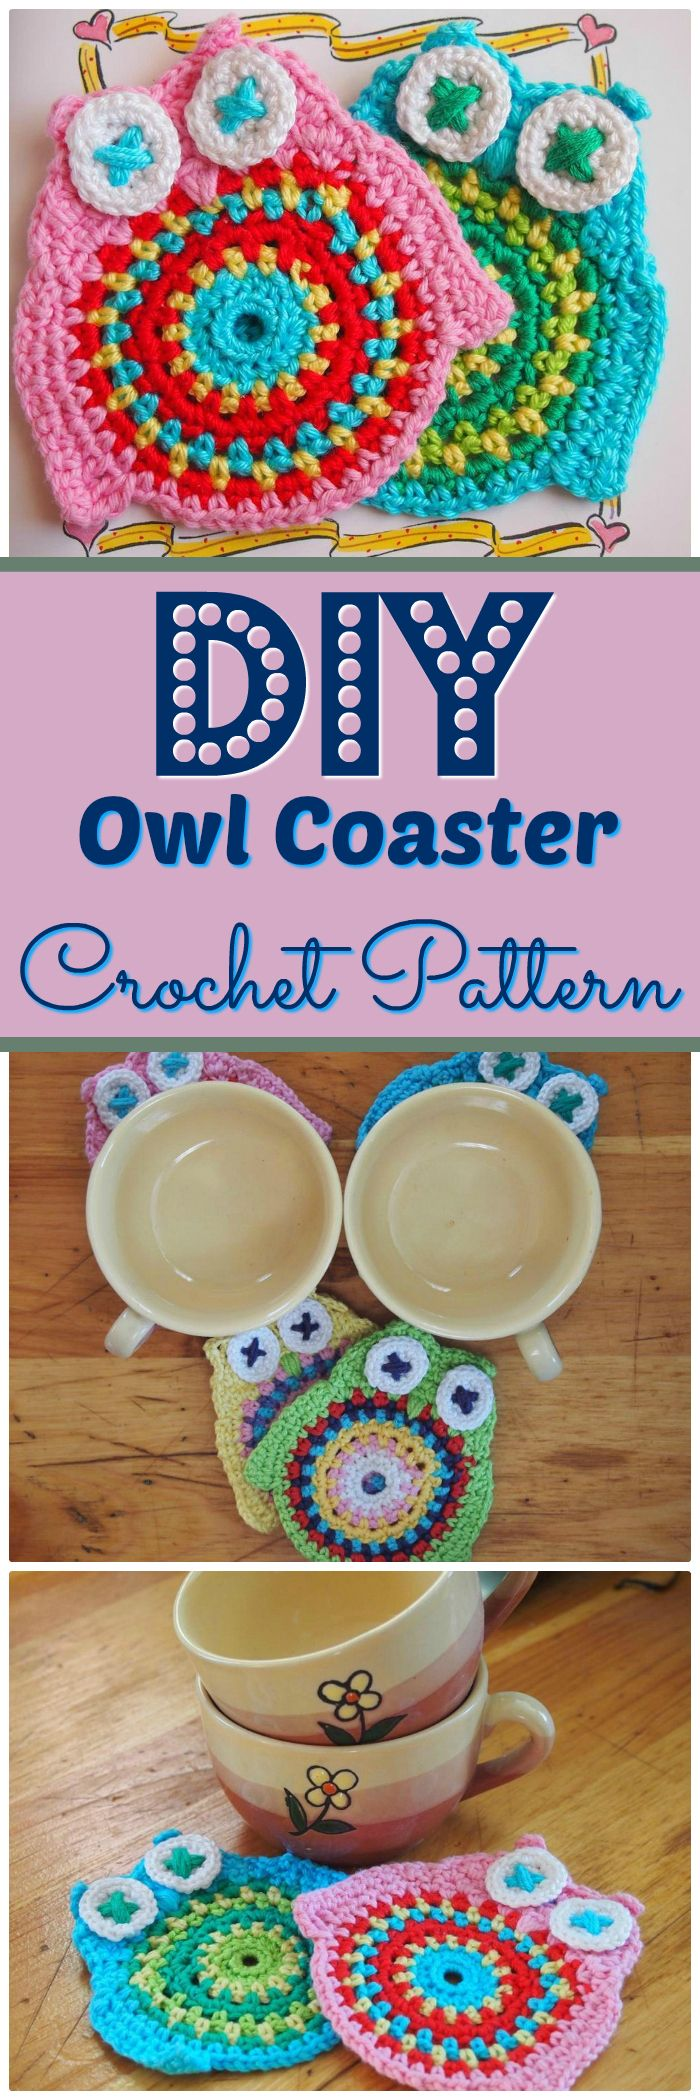 Owl Coaster Crochet Pattern - free crochet coaster patterns | Free Crochet Coaster Patterns